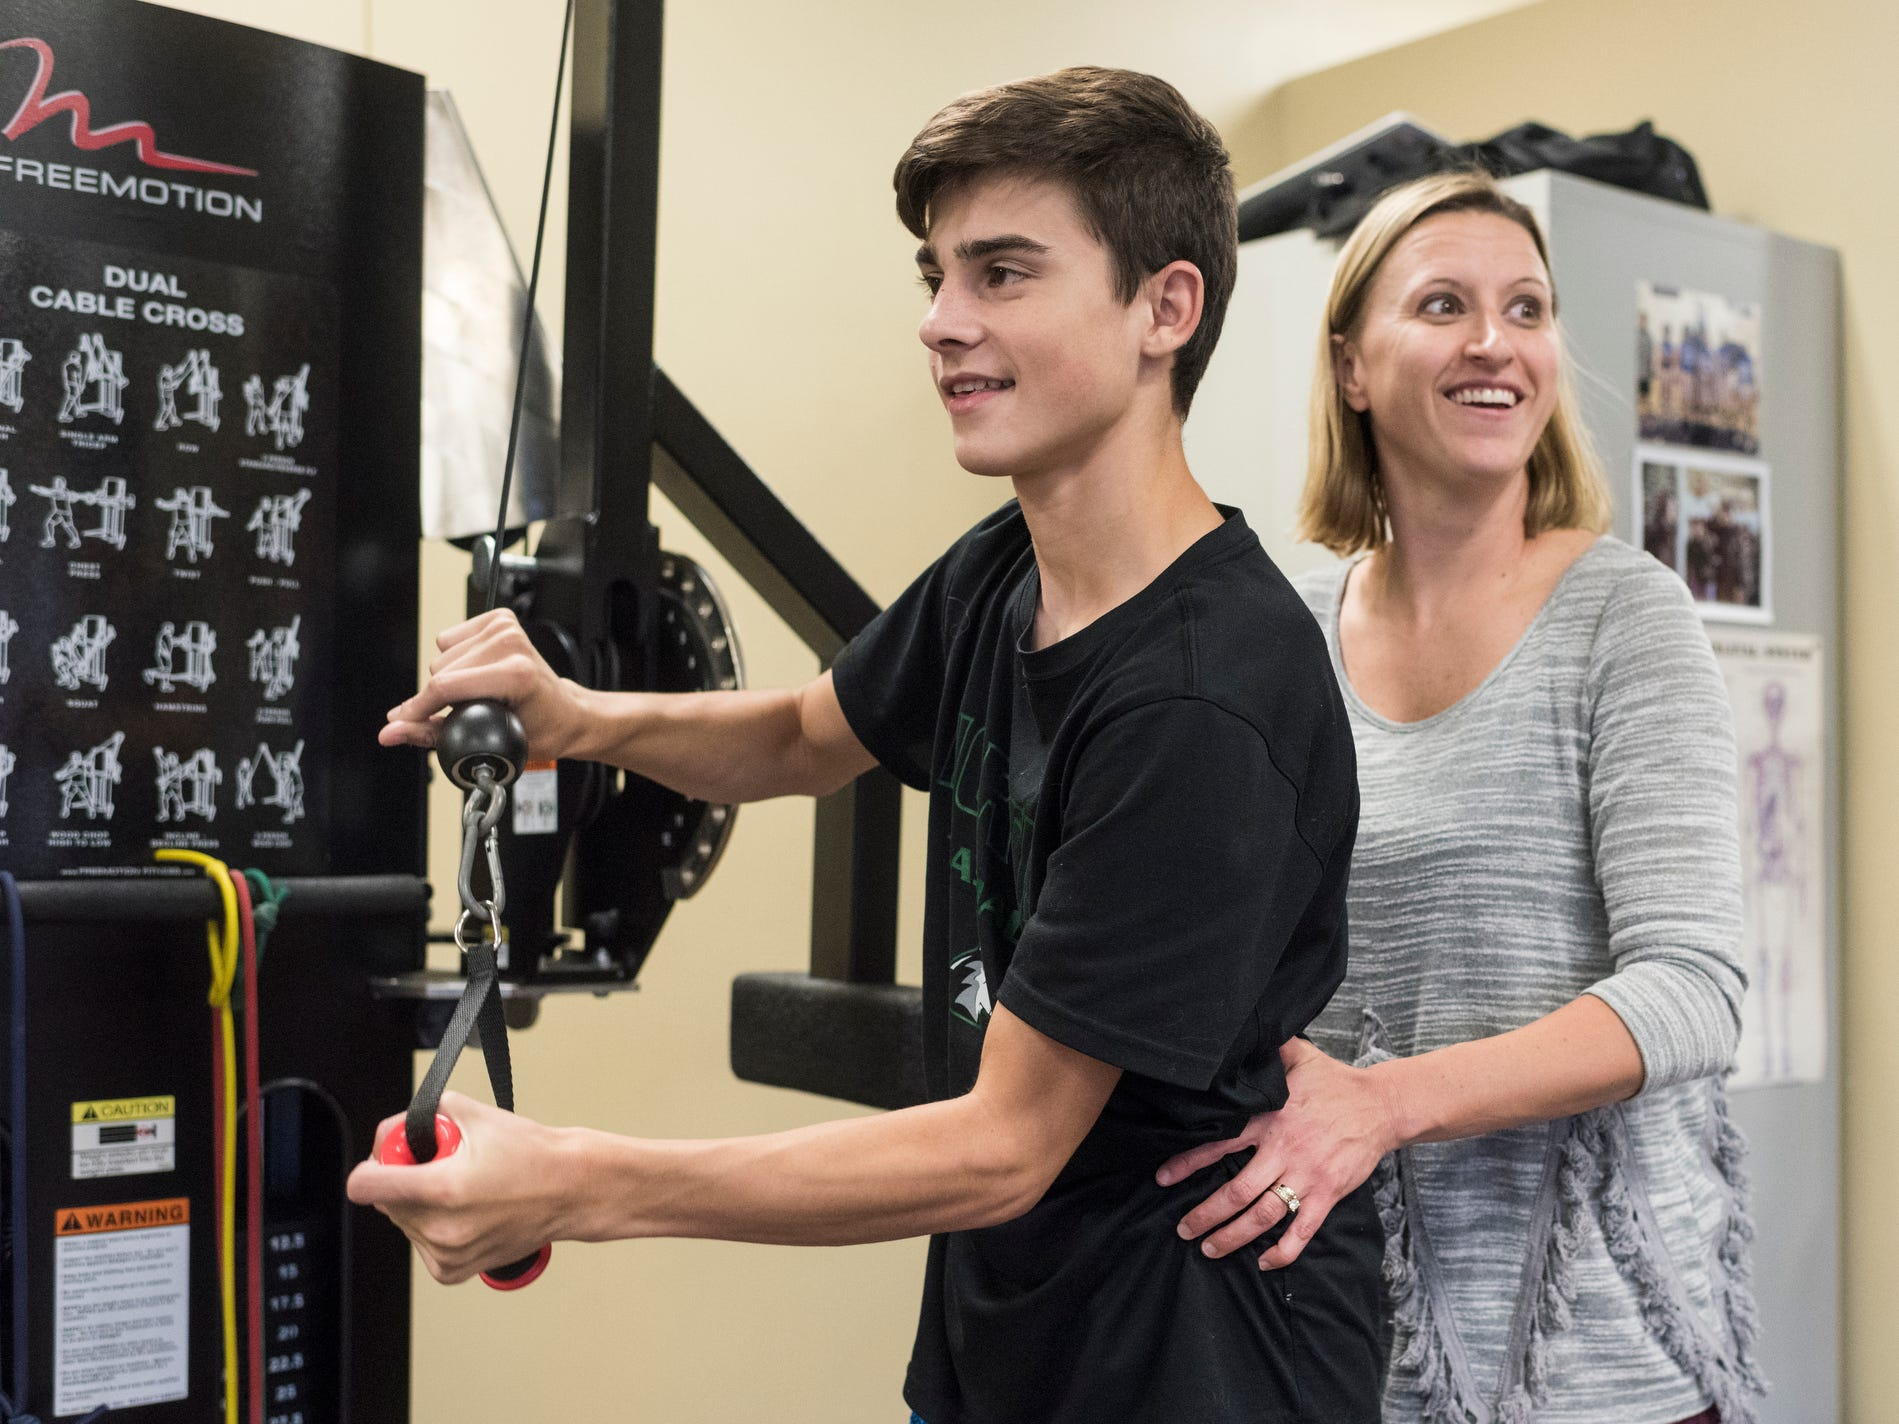 Sam Archuleta, left, attends physical therapy appointments with Natalie Hussmann, right, once a week at Pro Rehab, located along N. First Avenue, in Evansville, Ind. They work on his balance and strength to combat the effects of his rare degenerative neuromuscular disorder called Friedreich's ataxia (FA).